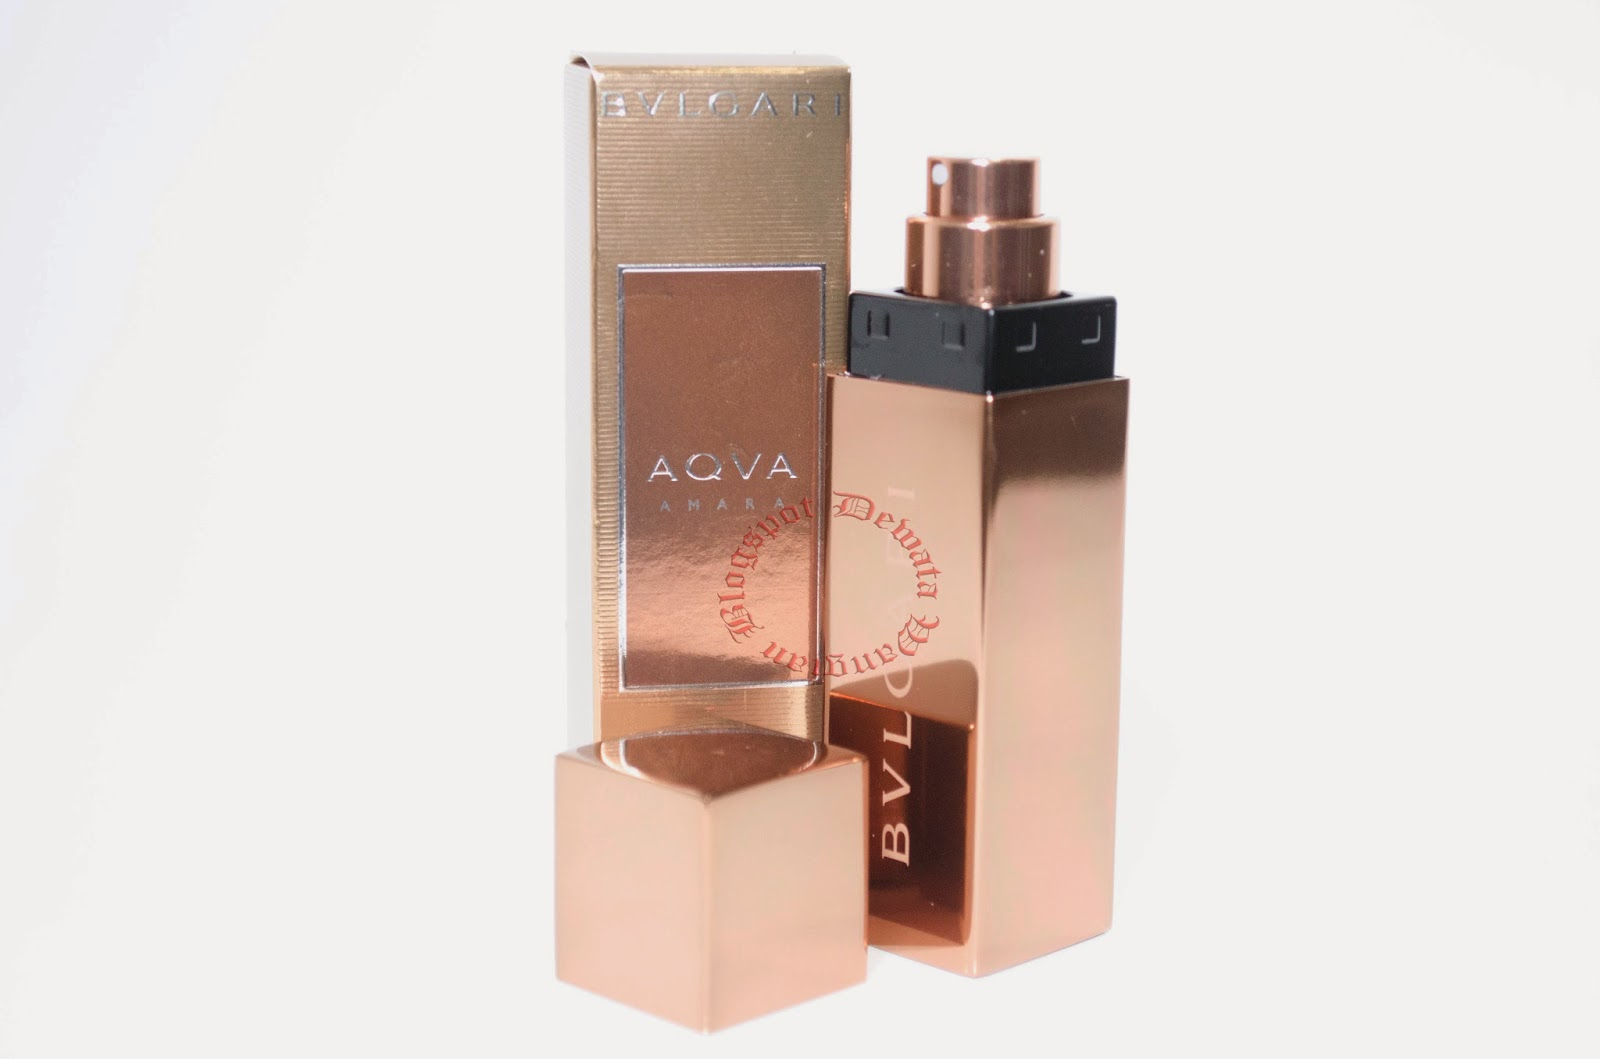 b4bbb6e3d8 From the infinite opulence of these shores comes the inspiration for the  jeweler's new fragrance for men, AQVA Amara. Launched by house of Bvlgari  in 2014.